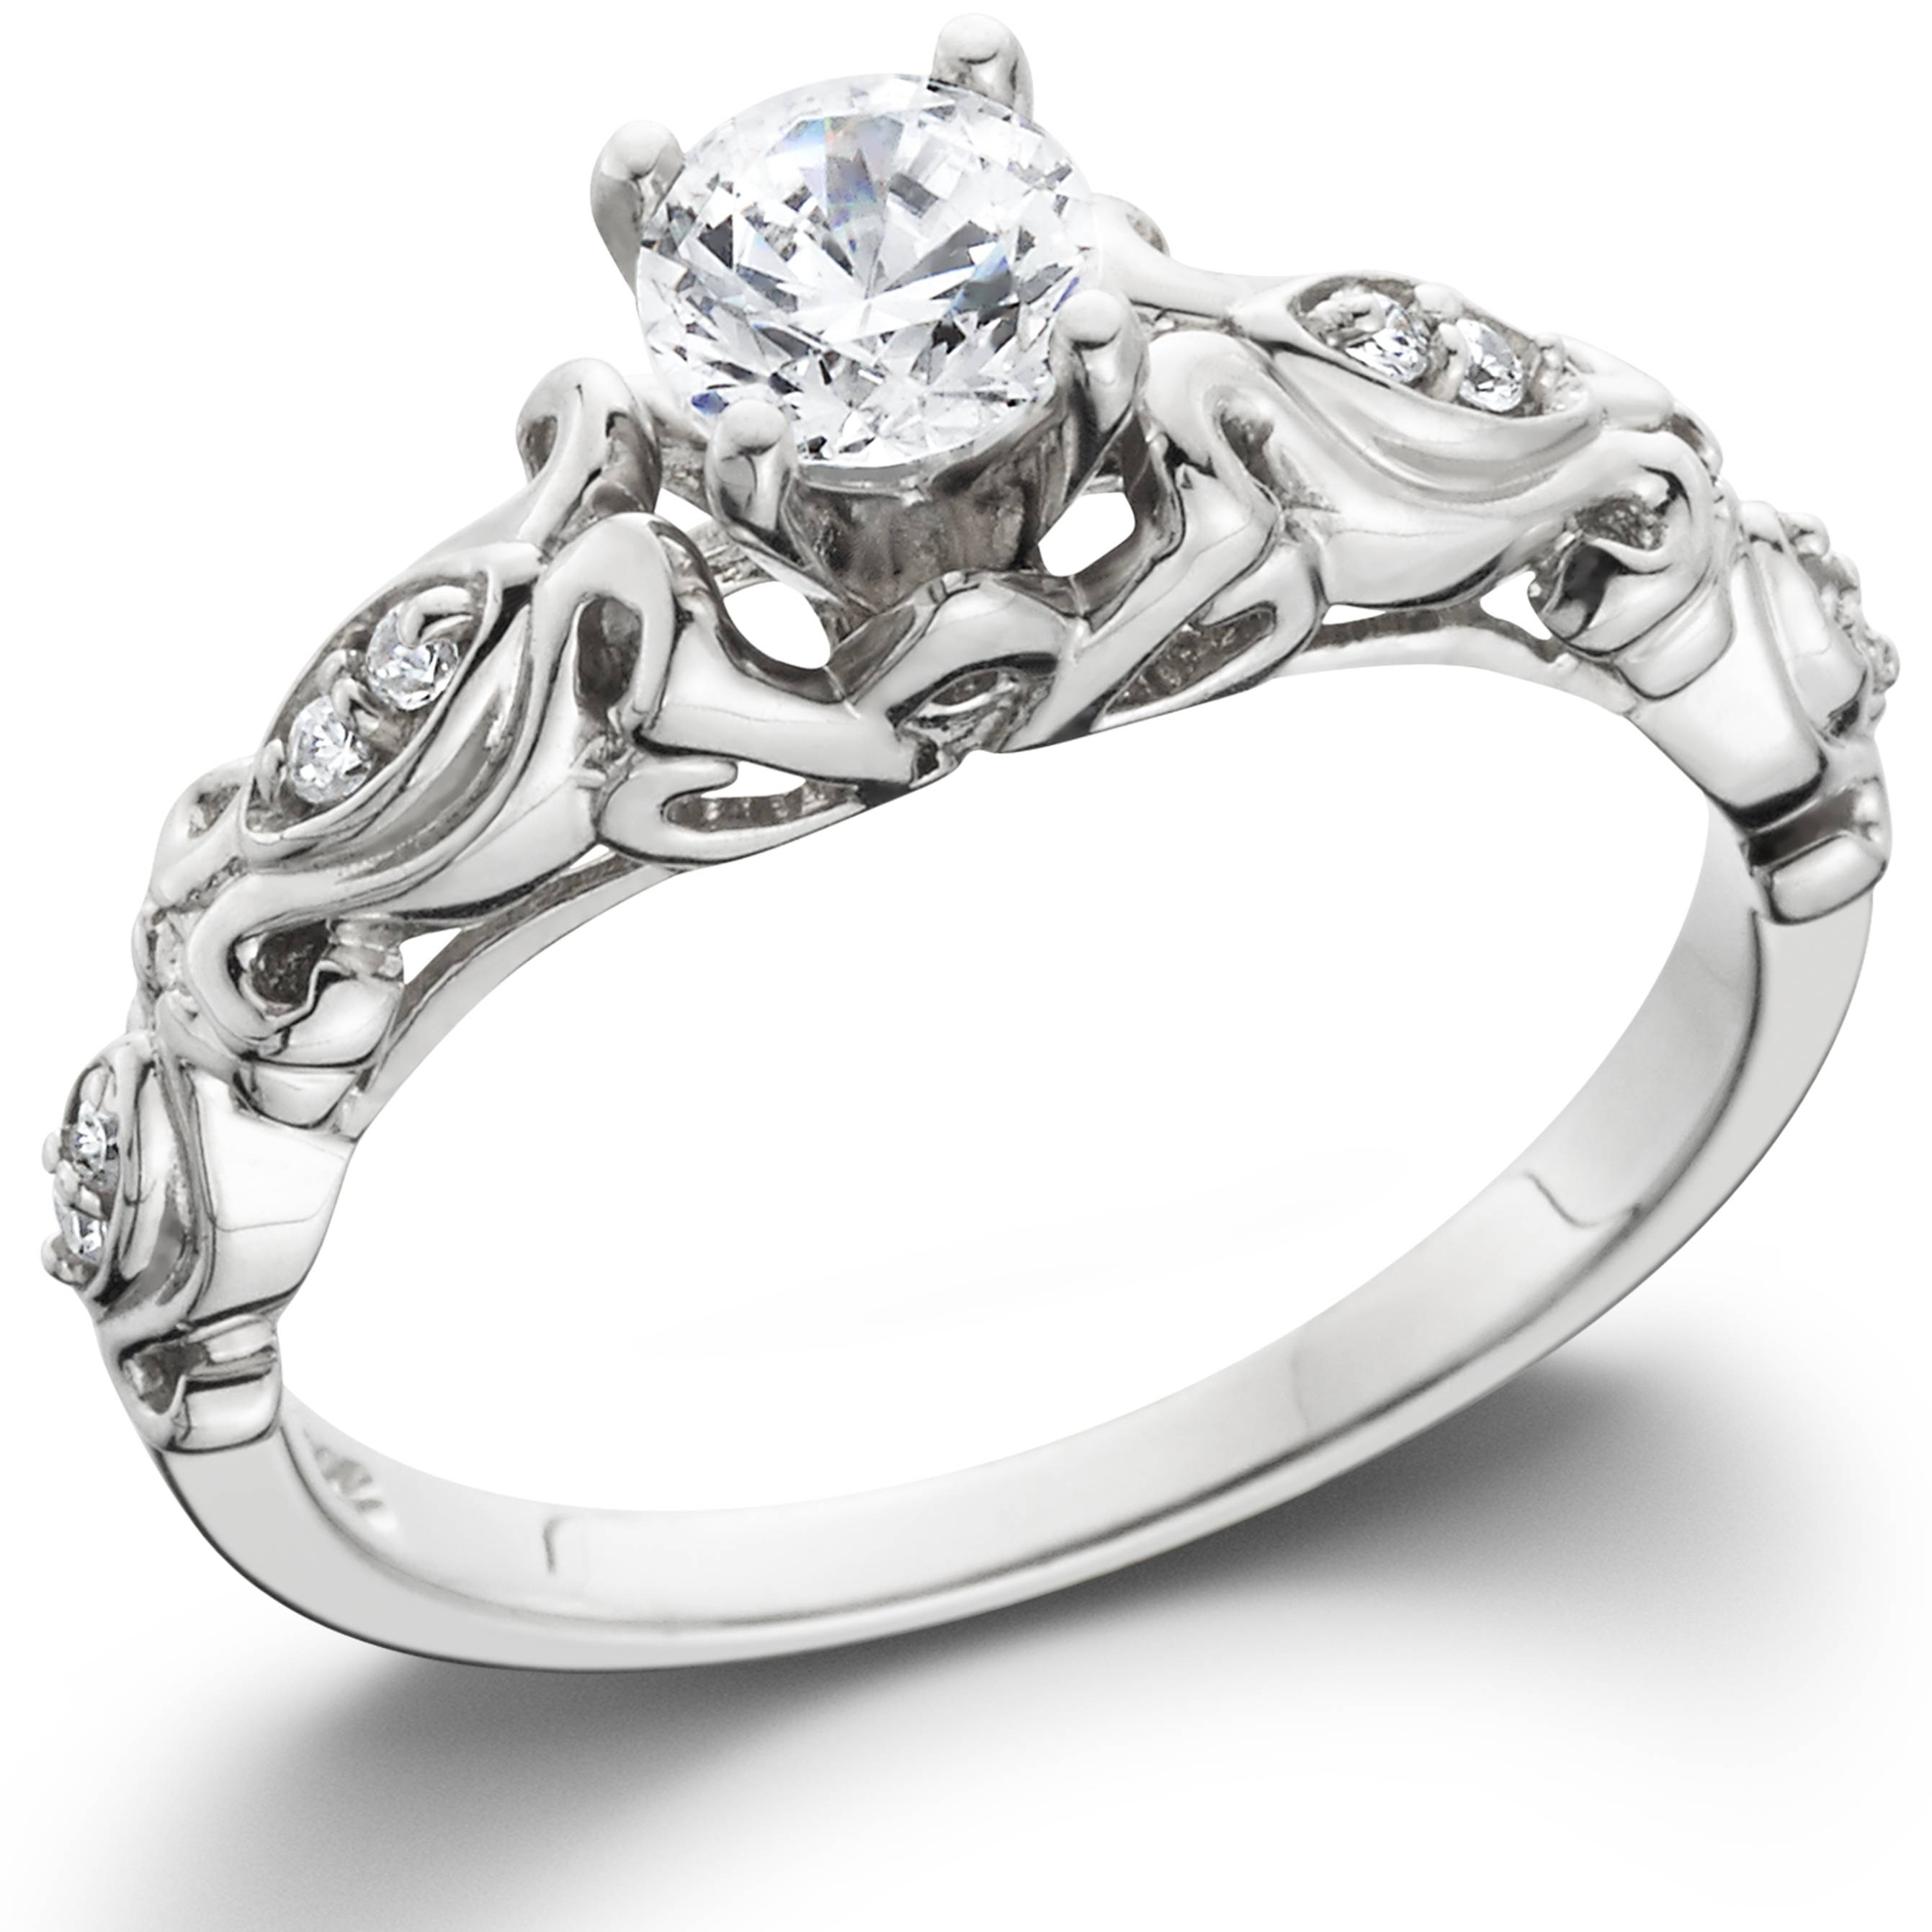 14 Carat Diamond Wedding Ring – Wedding Rings Design Ideas Throughout 14 Karat Wedding Rings (View 1 of 15)